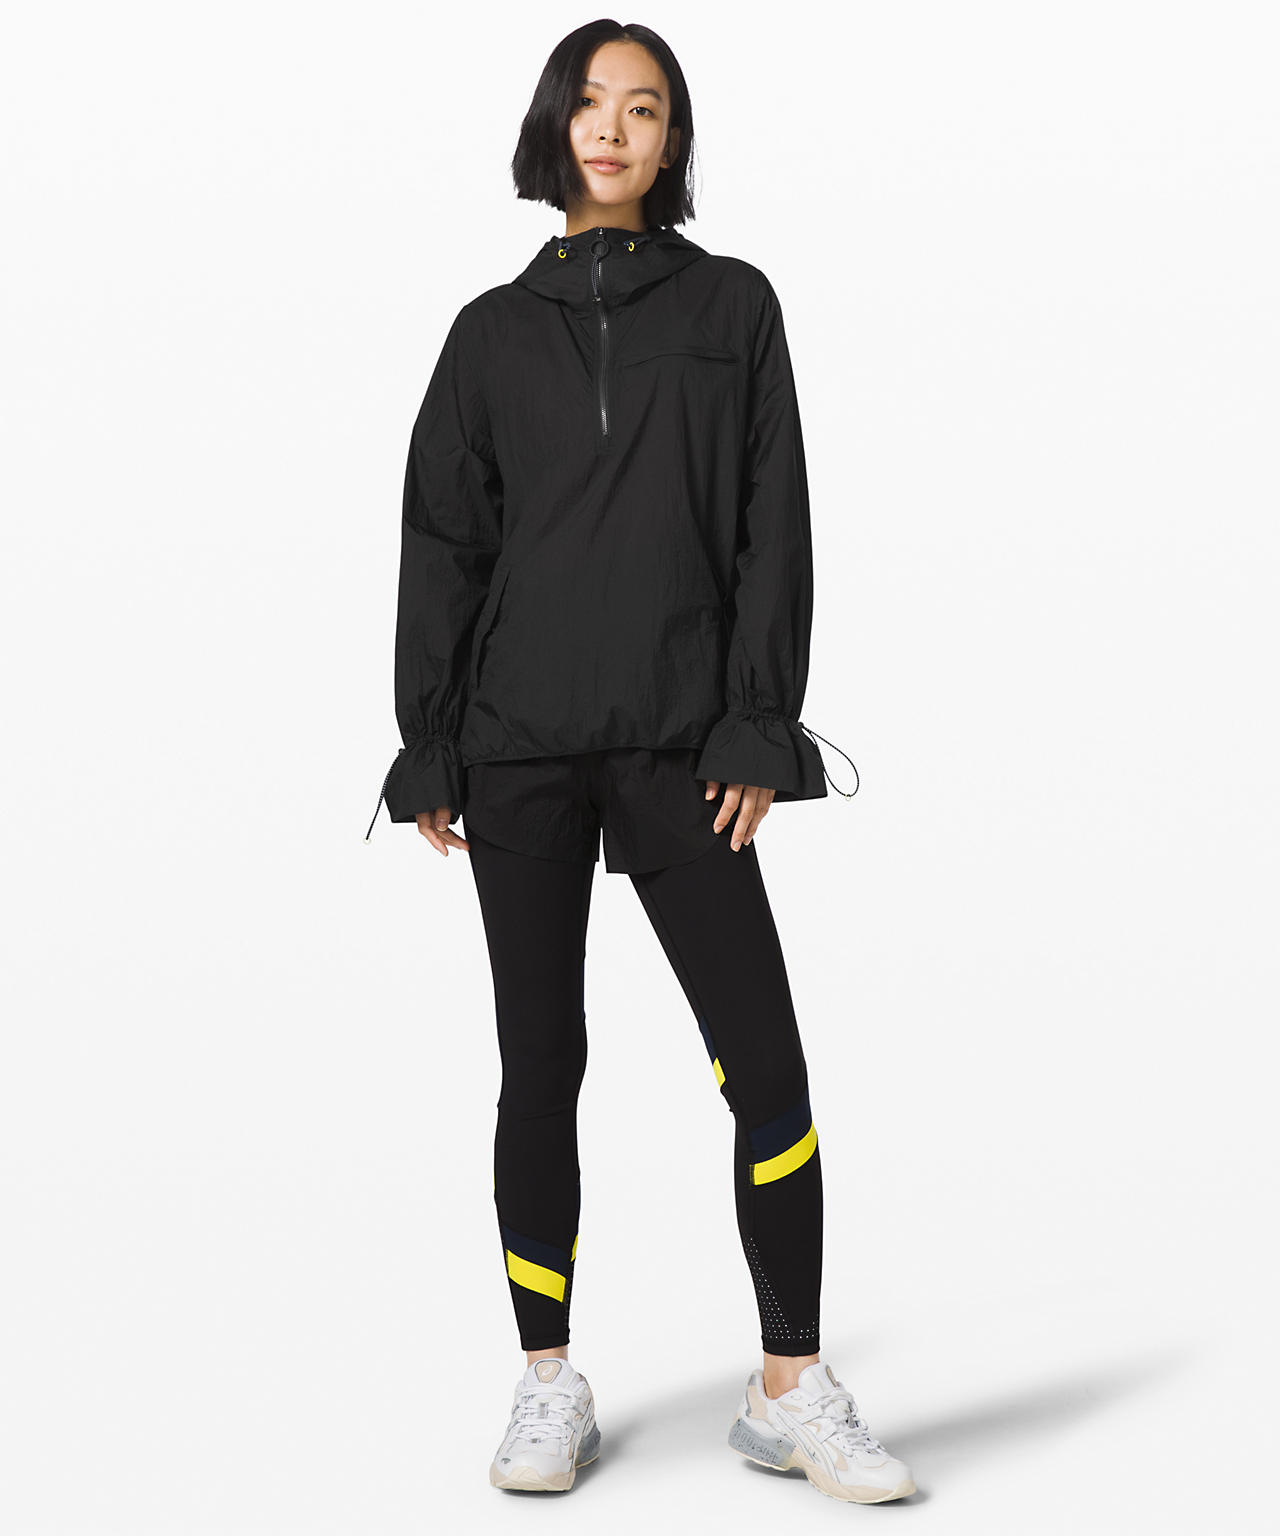 Break New Ground 1/2 Zip  lululemon x Roksanda